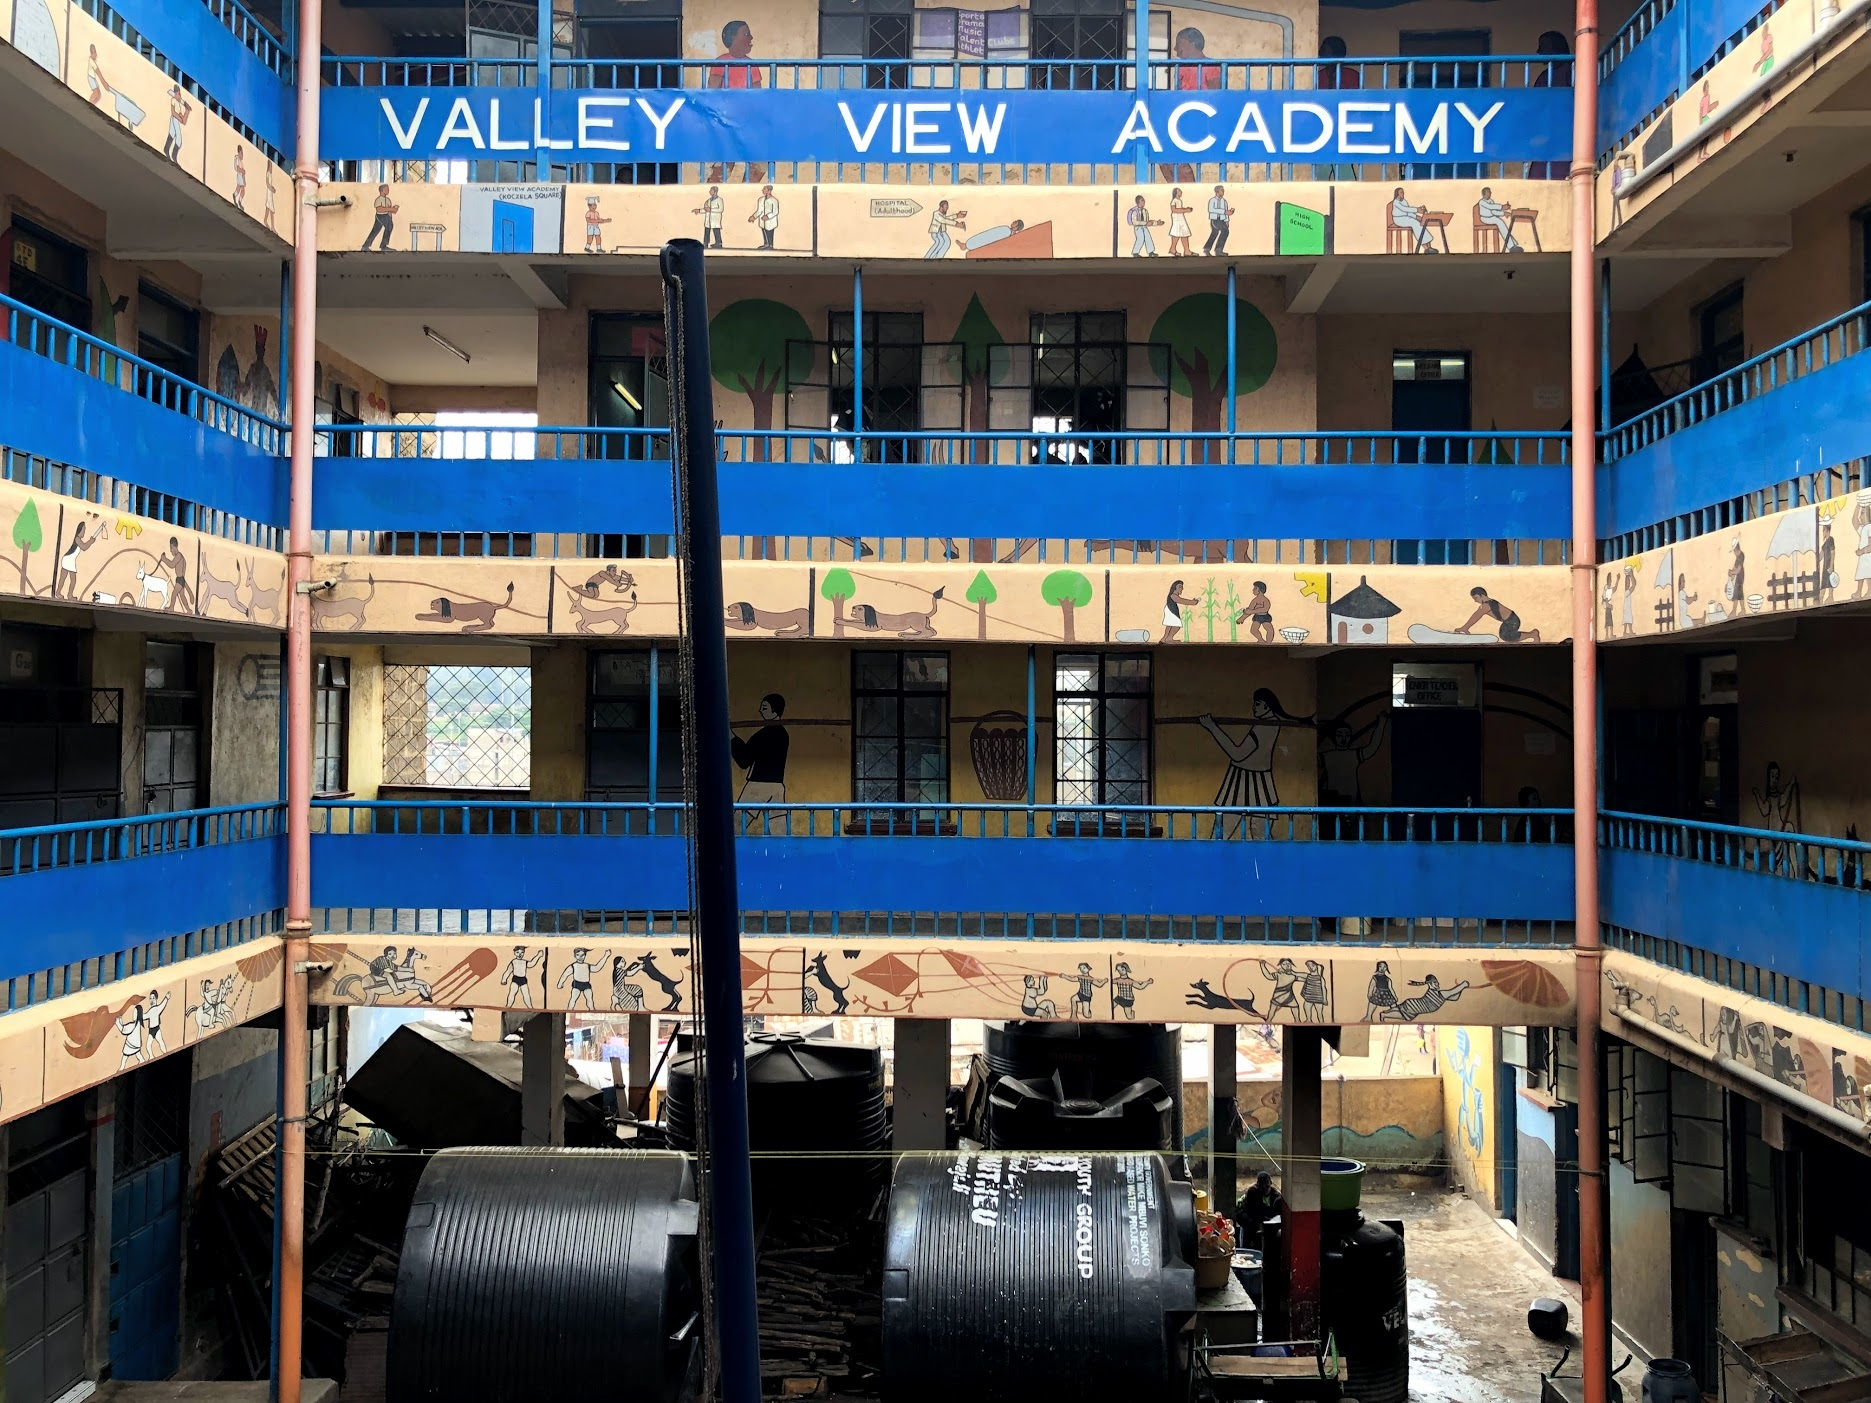 The Valley View Academy in the slum of Mathare is also home to the Futbolmas offices. It is a community school funded by the parents of the students.